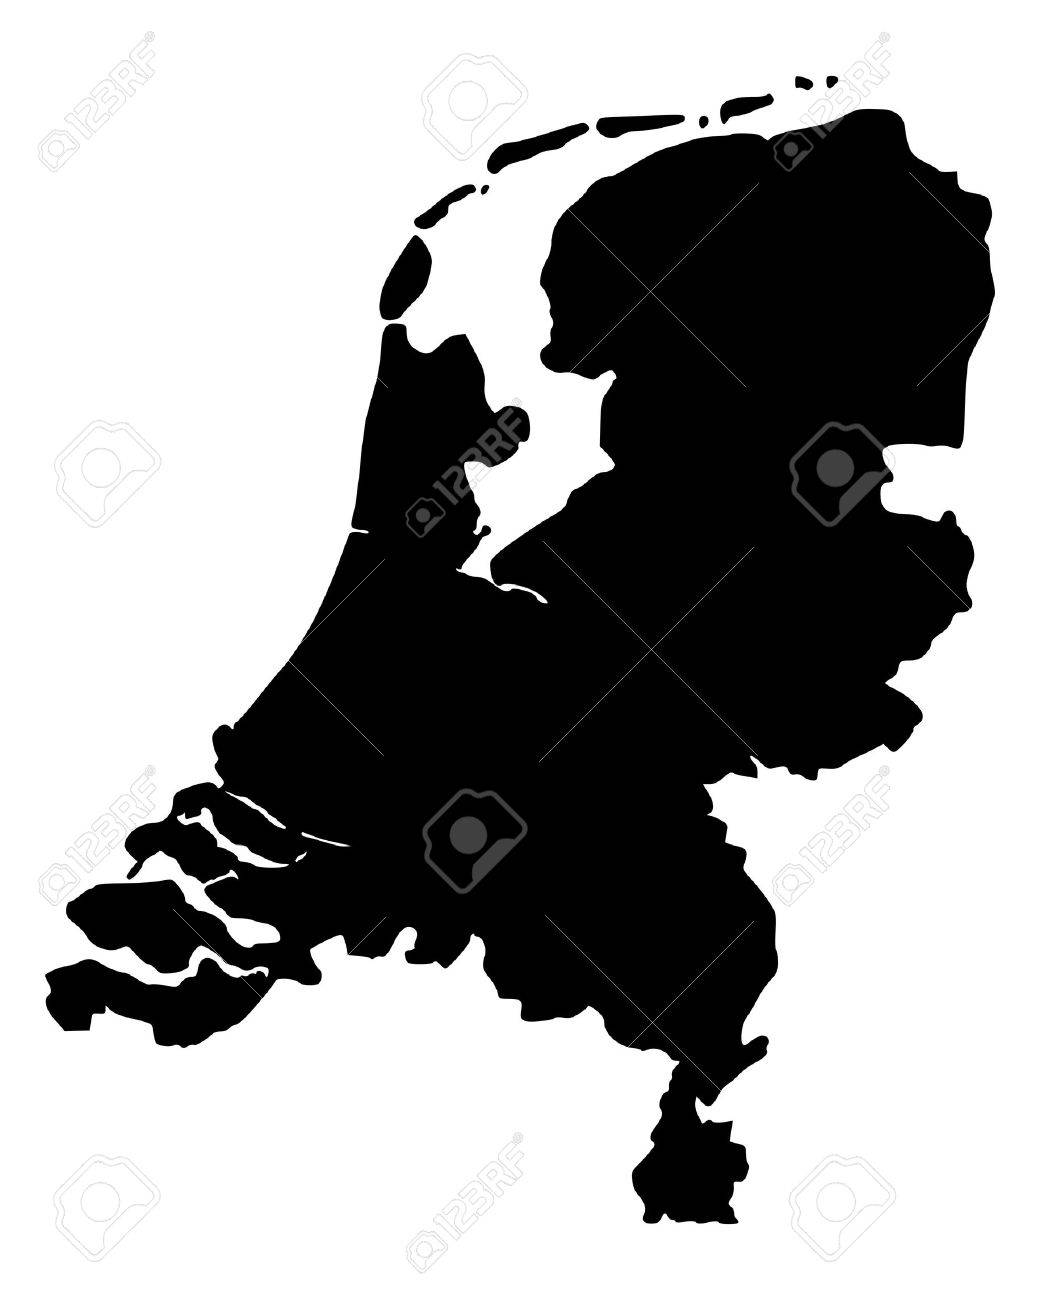 Map of the Netherlands Stock Vector - 13248424